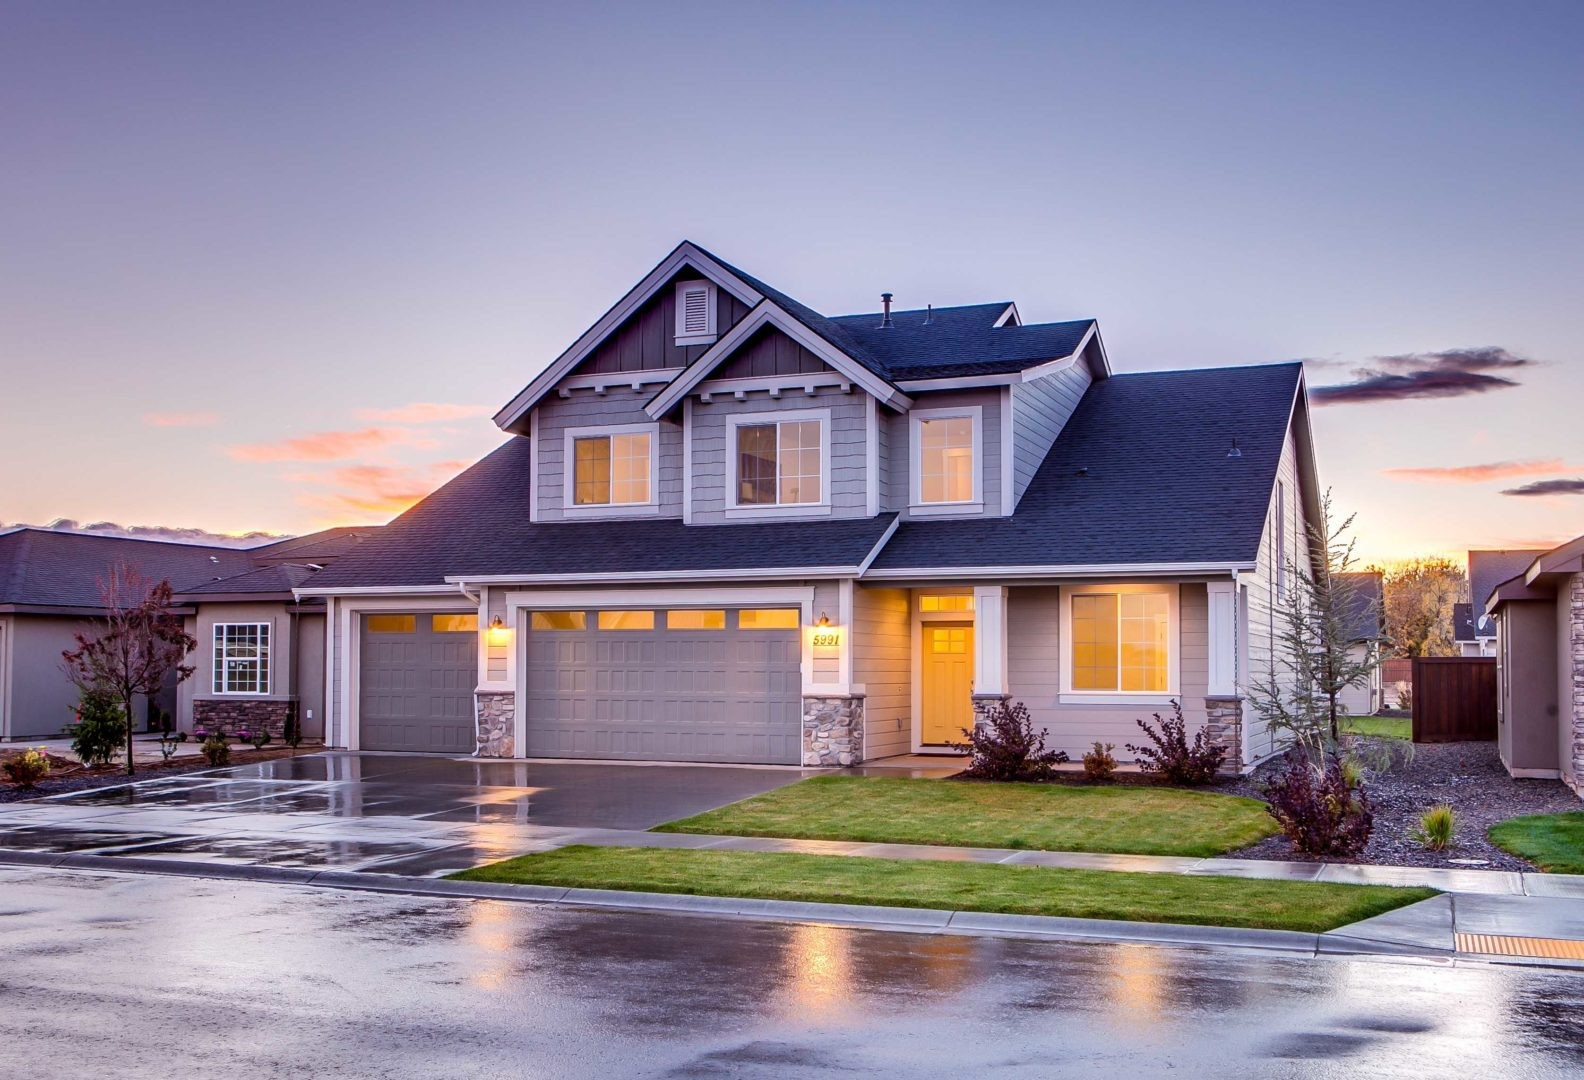 blue-and-gray-concrete-house-with-attic-during-twilight-186077_optimized-min